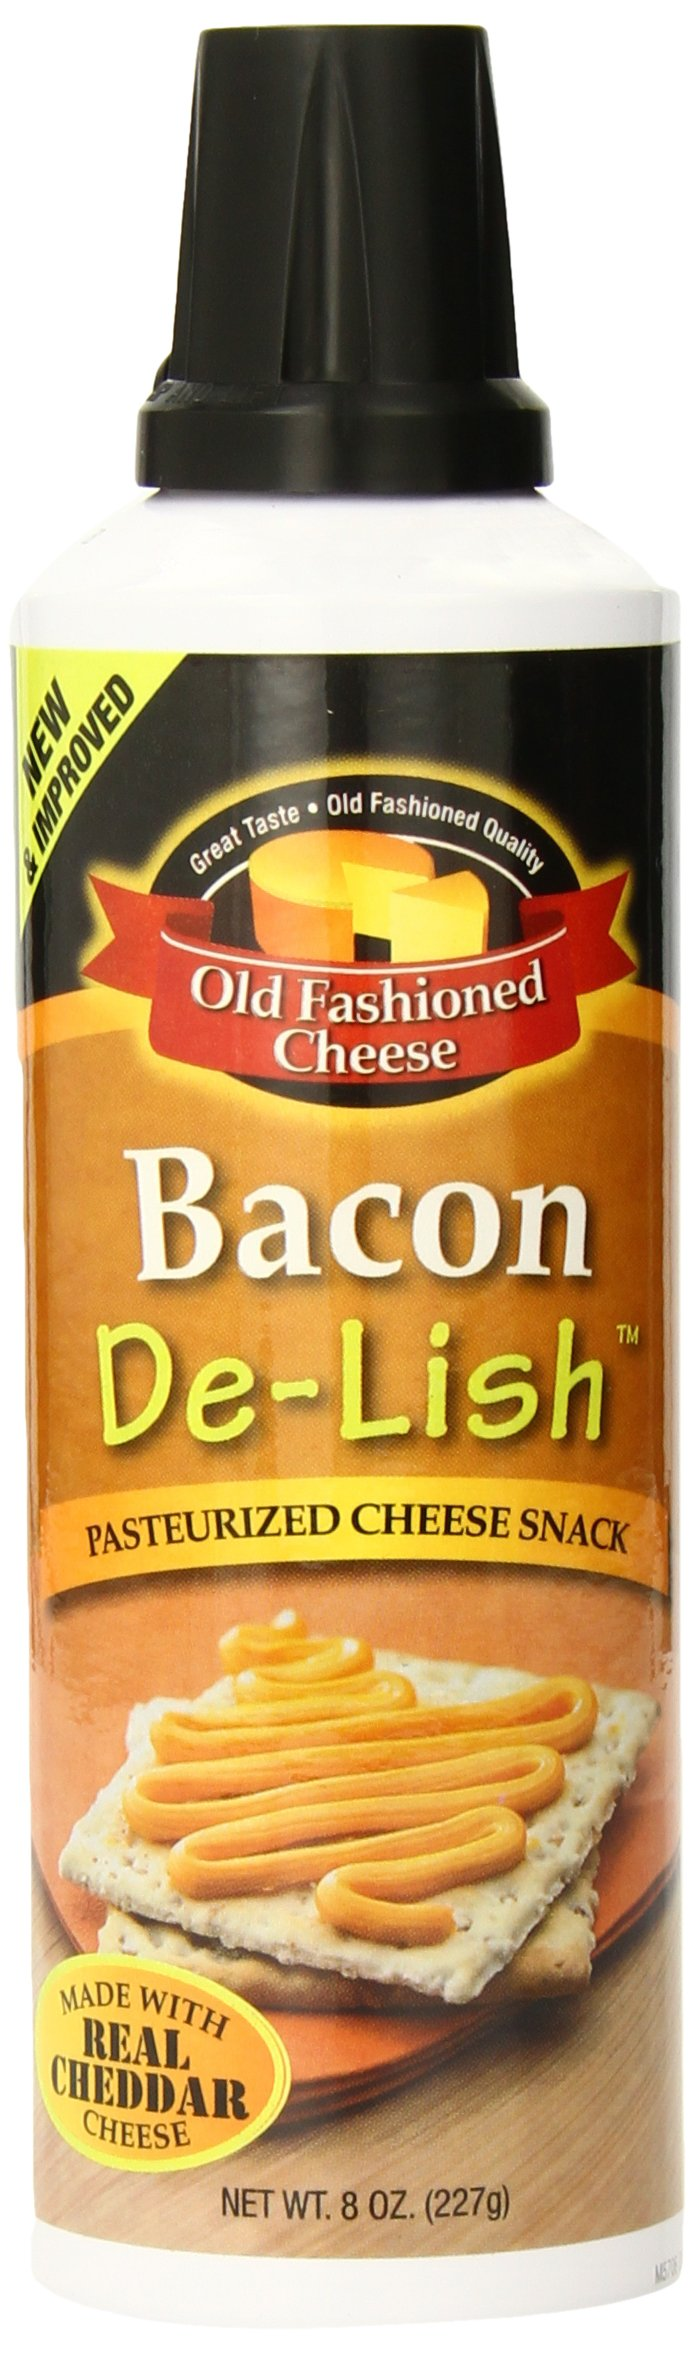 Old Fashioned Cheese Bacon De Lish Cheese Spread, 8 Ounce by Old Fashioned Cheese